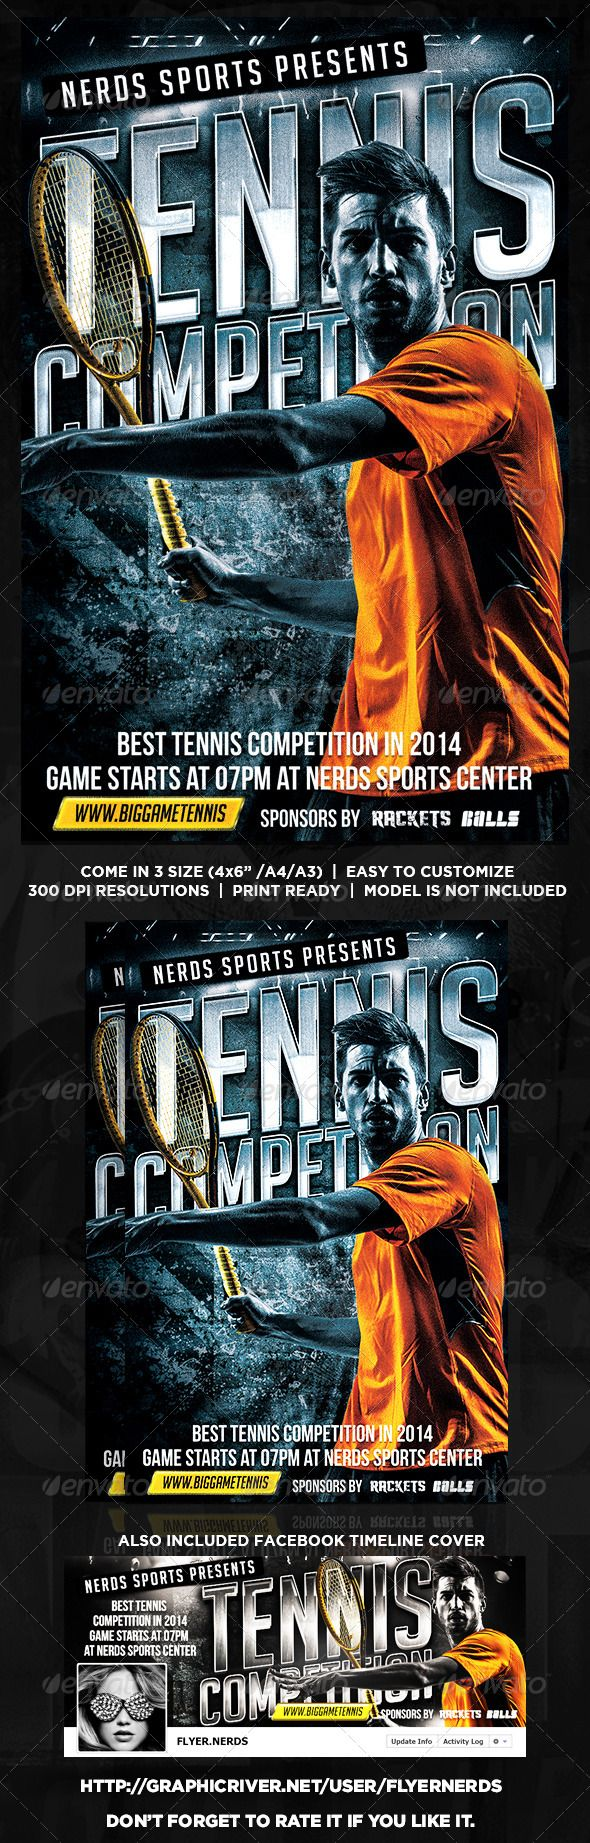 Tennis Competition Flyer – Competition Flyer Template